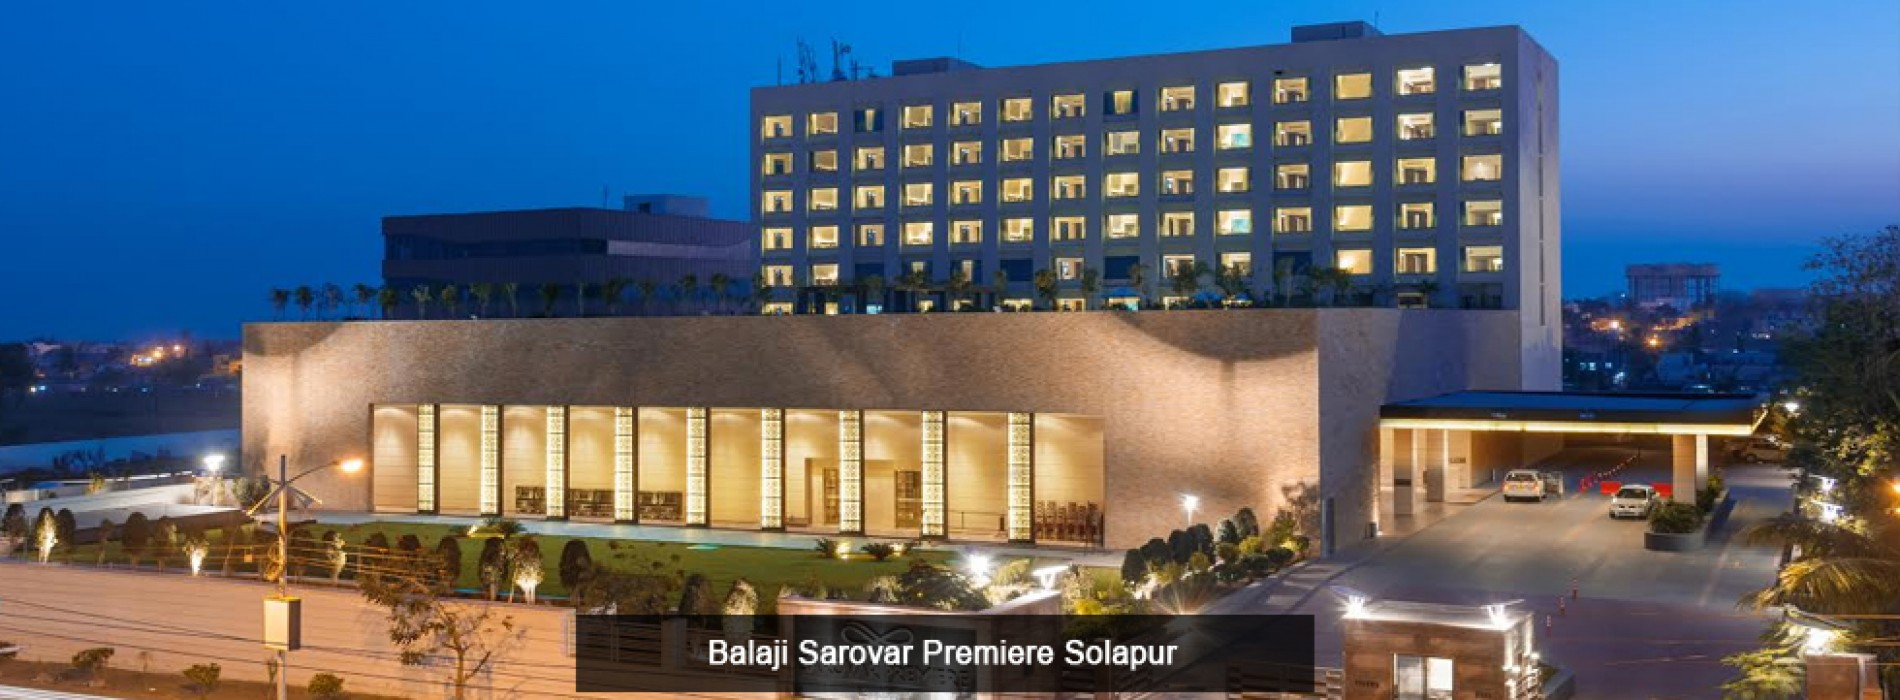 Balaji Sarovar Premiere Solapur receives IGBC's Leed India Gold rating